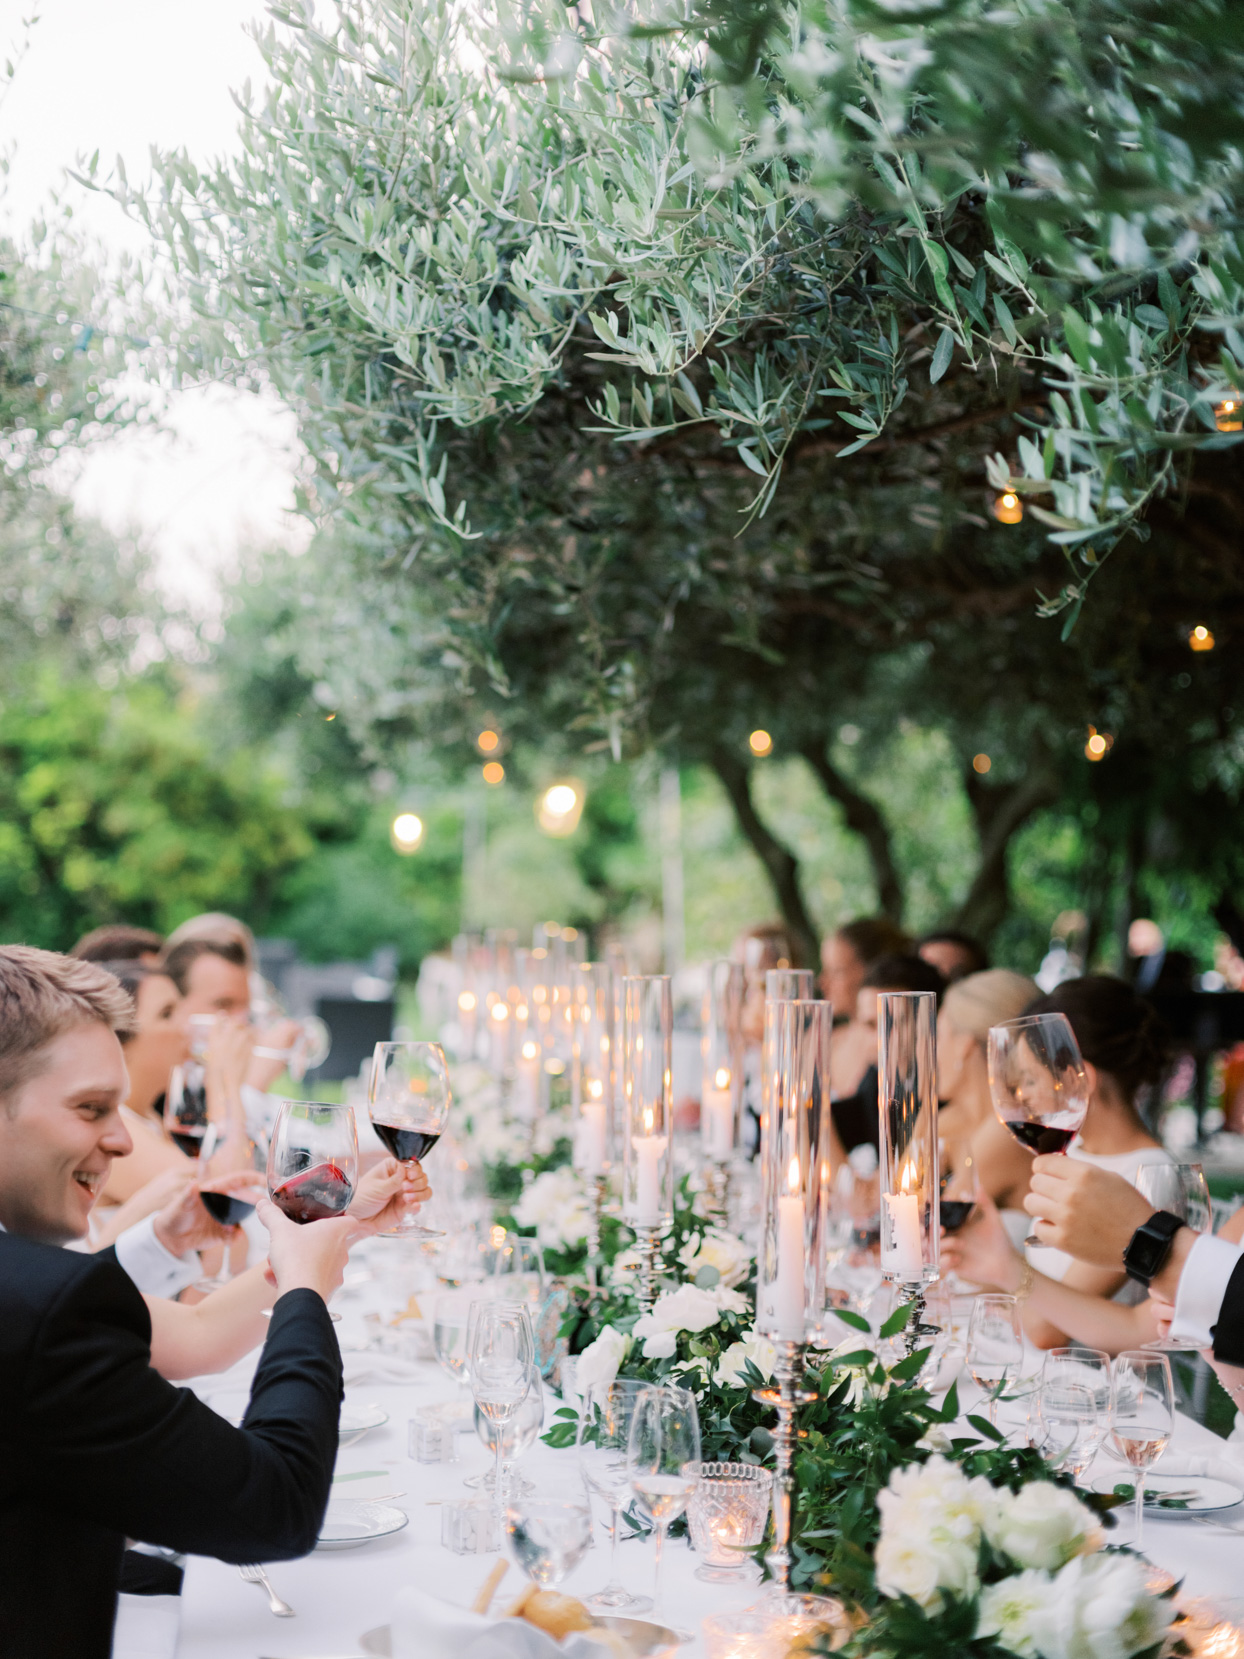 guests toasting at long white wedding table